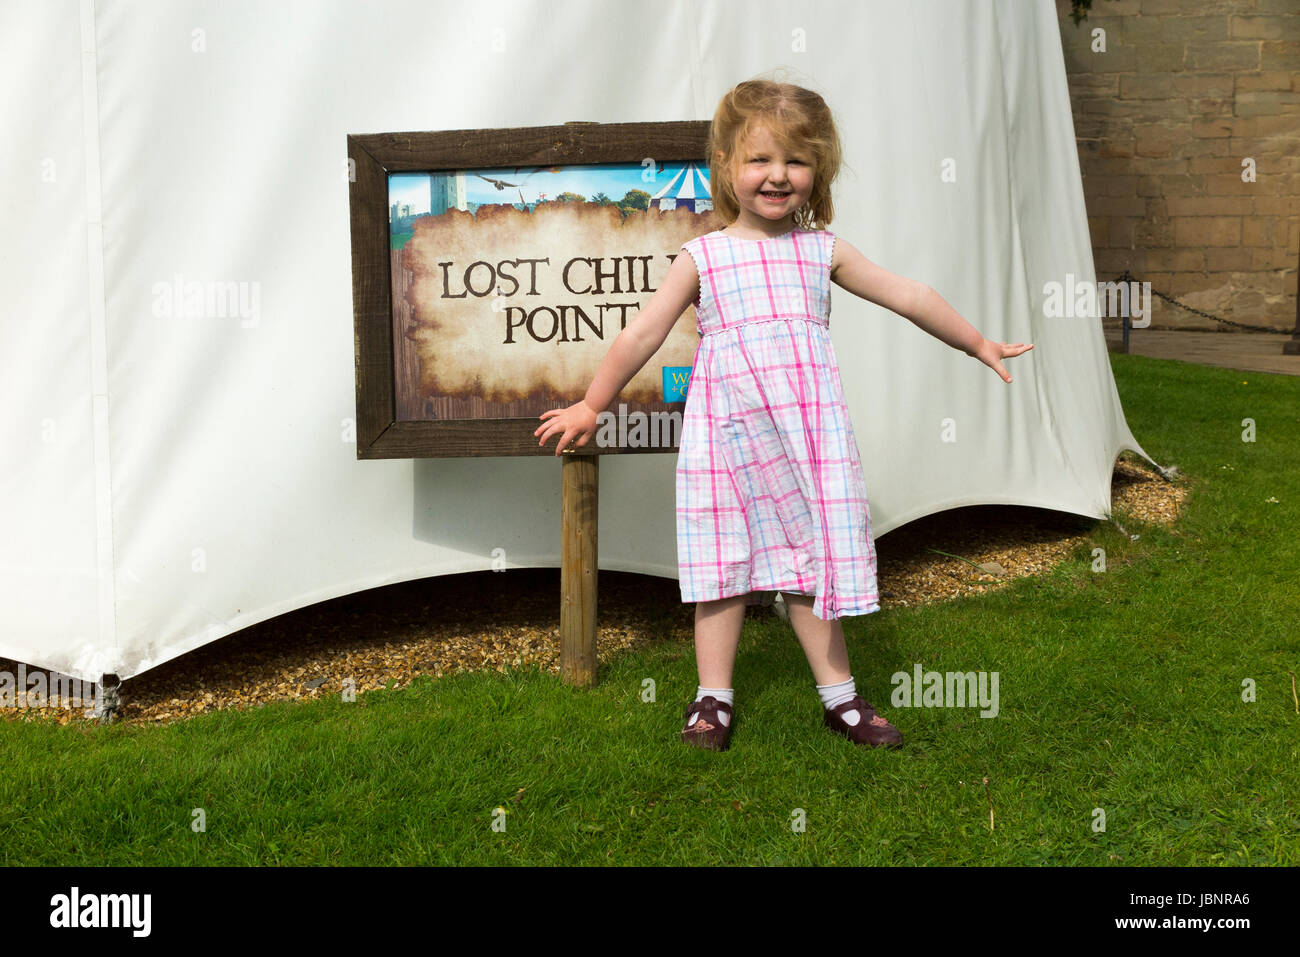 Lost child point sign: A two-year-old girl / kids / infant who appears to be lost or separated from her parents - Stock Image